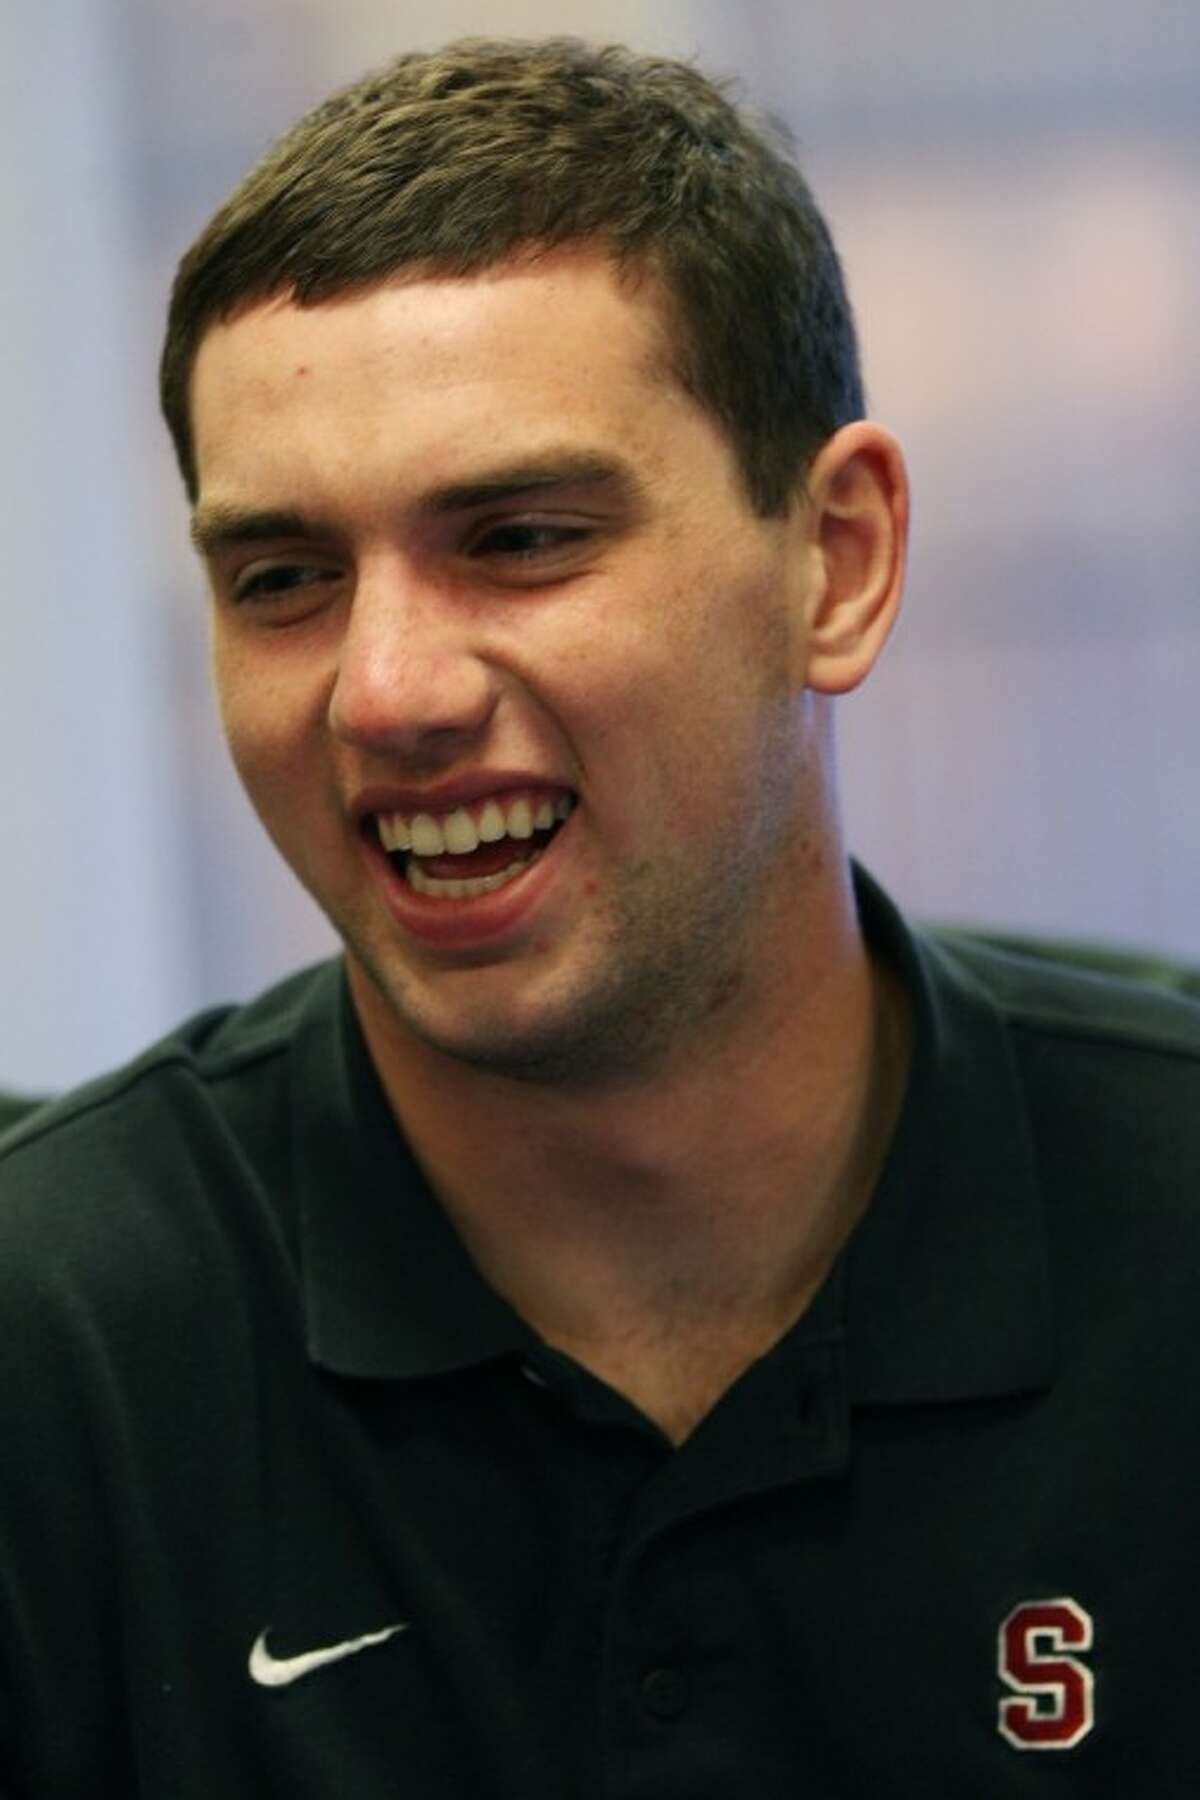 Heisman candidate Andrew Luck, quarterback for Stanford, speaks to reporters during a news conference on Friday, Dec. 10, 2010, in New York. (AP Photo/Andrew Burton)